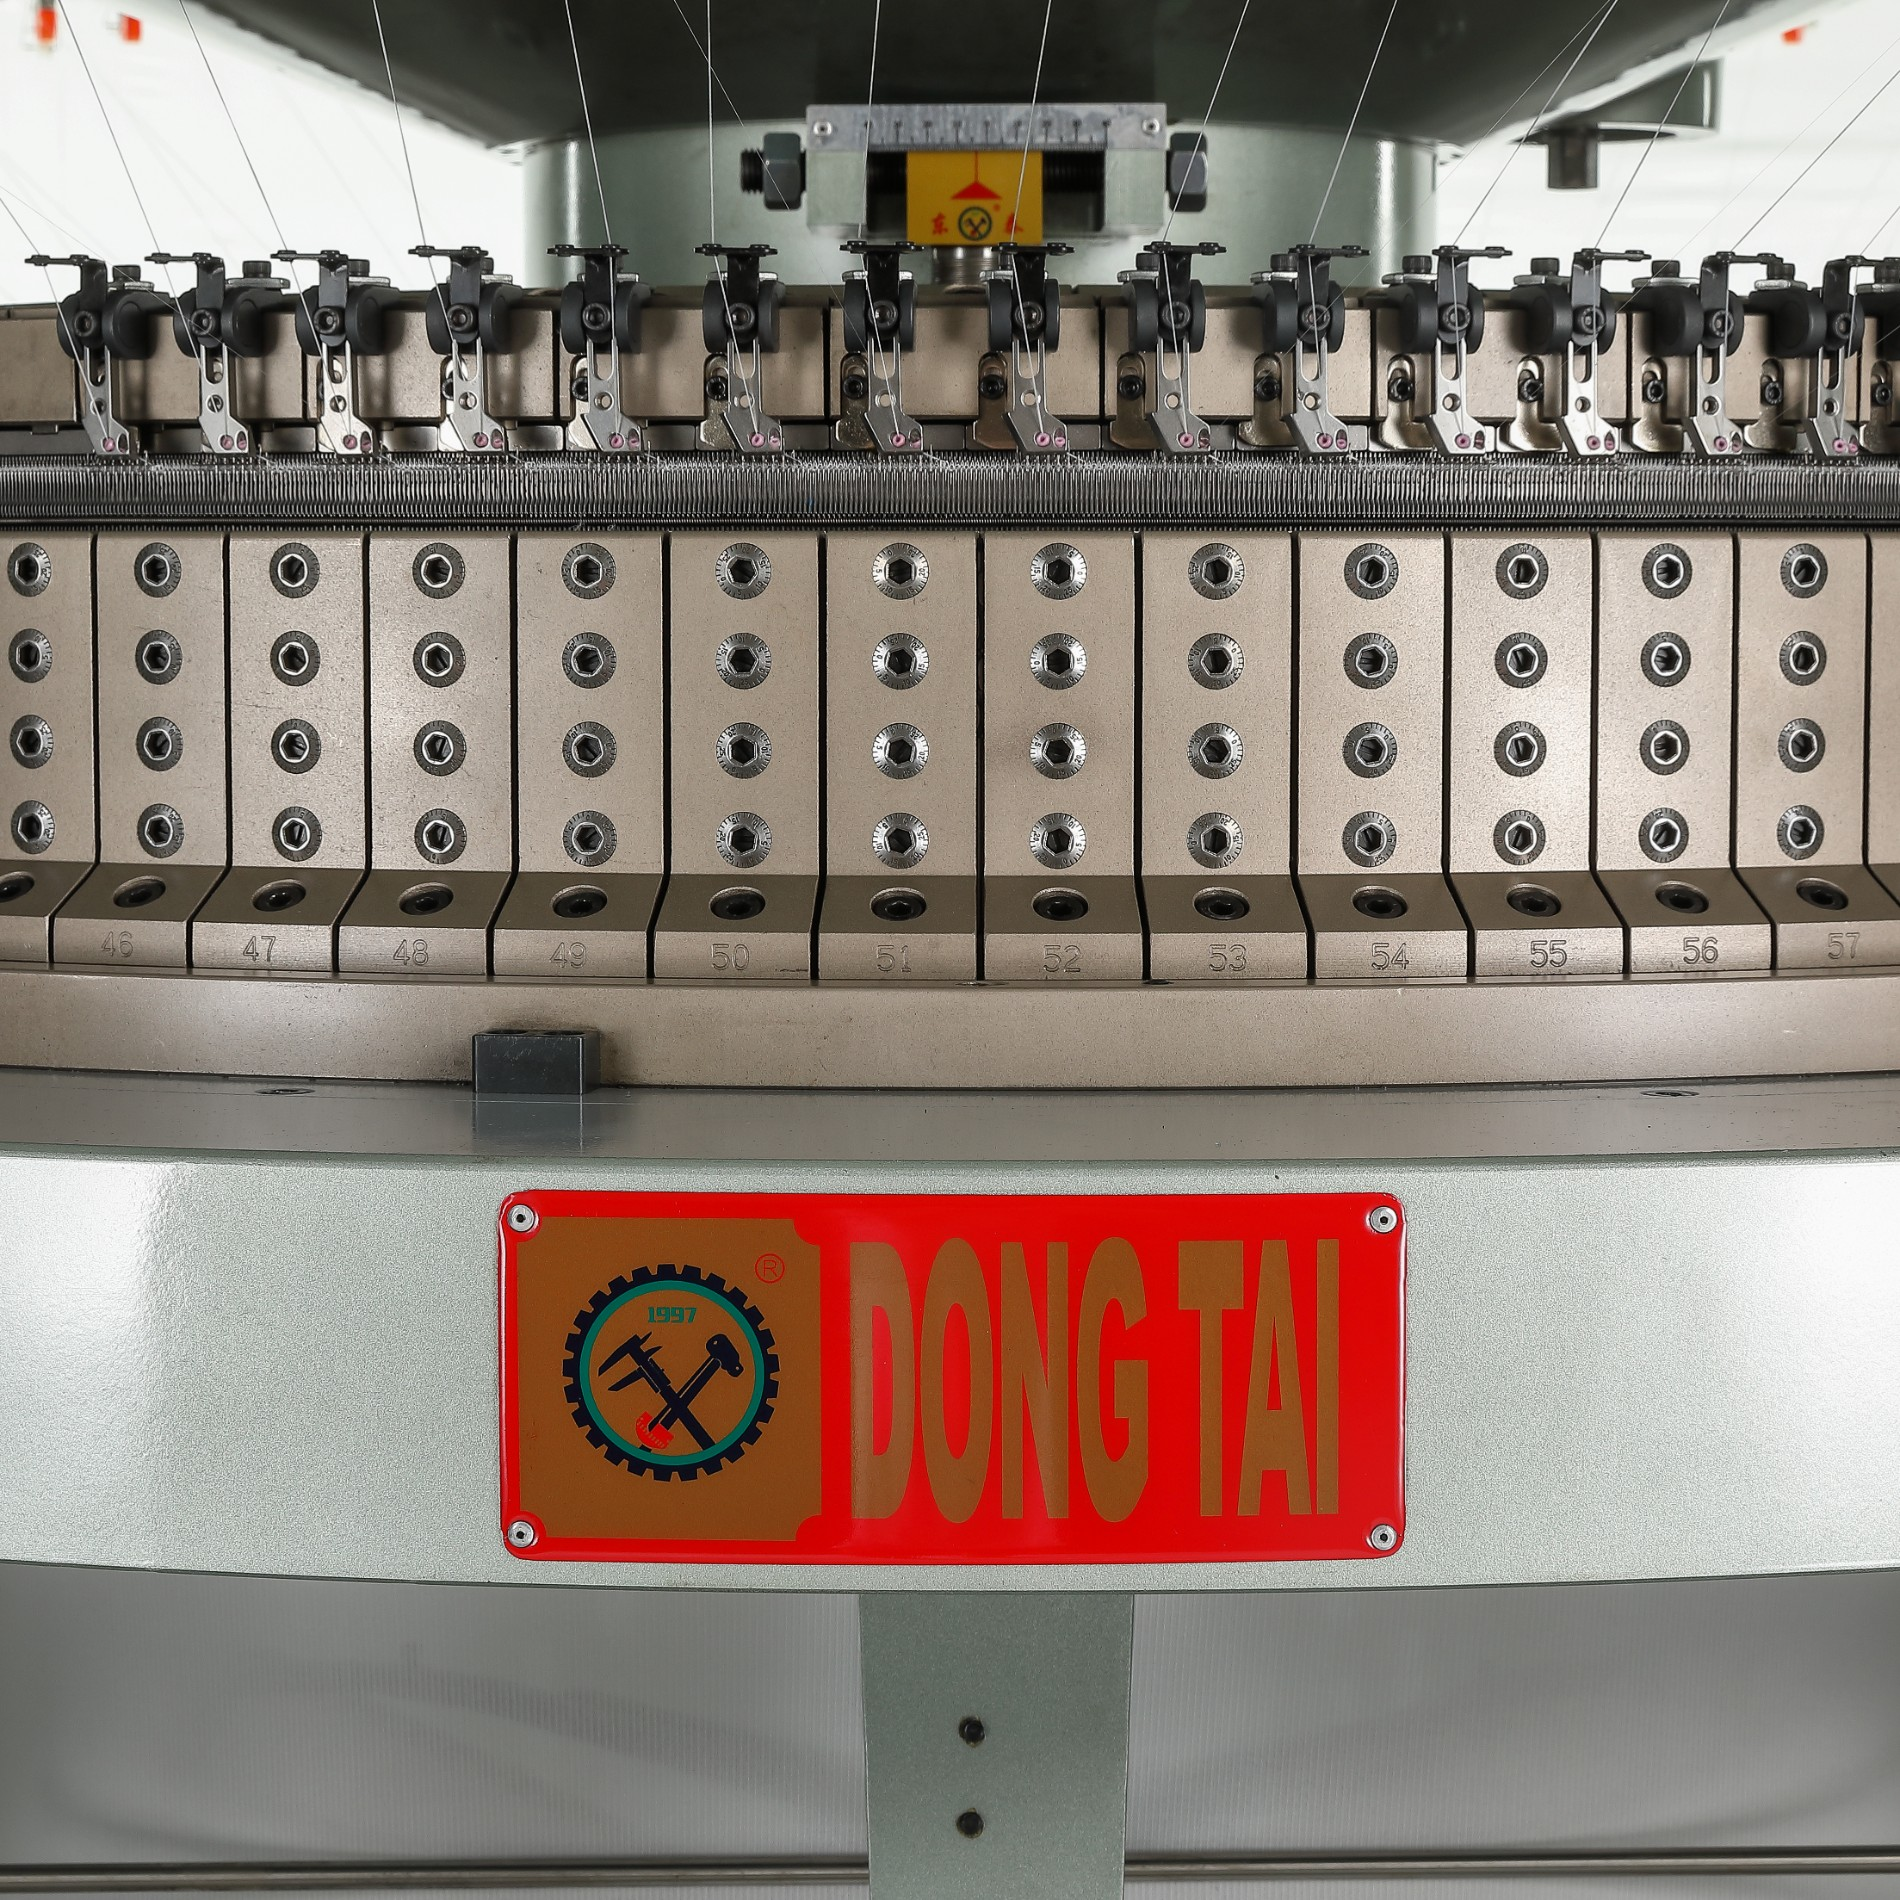 High Speed Double Jersey Circular Knitting Machine Manufacturers, High Speed Double Jersey Circular Knitting Machine Factory, Supply High Speed Double Jersey Circular Knitting Machine